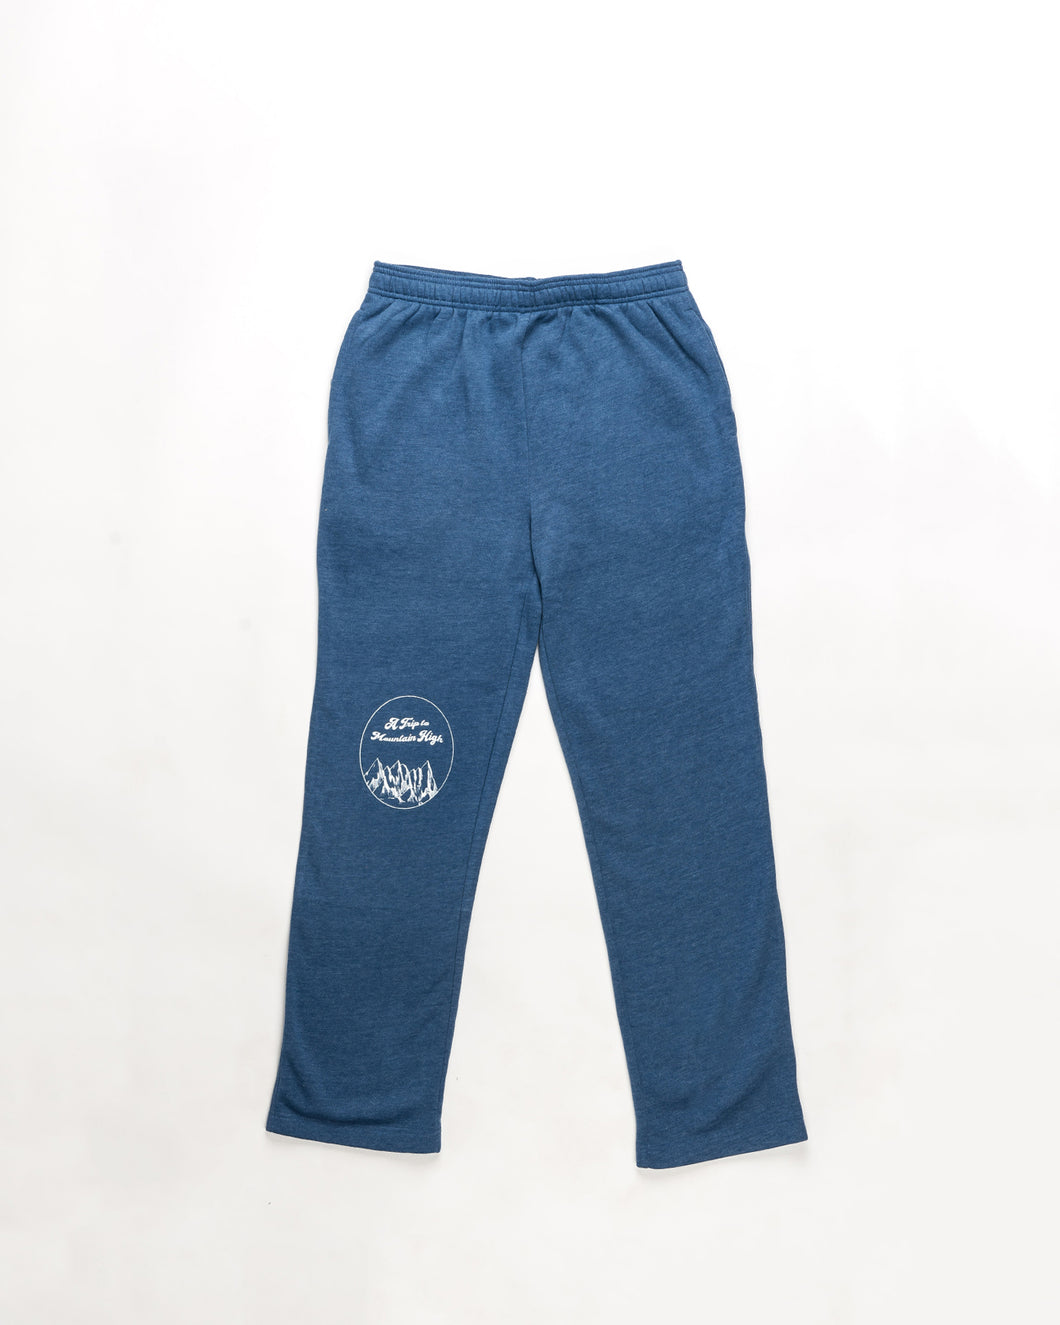 ATMH Sweats (Heather Blue)